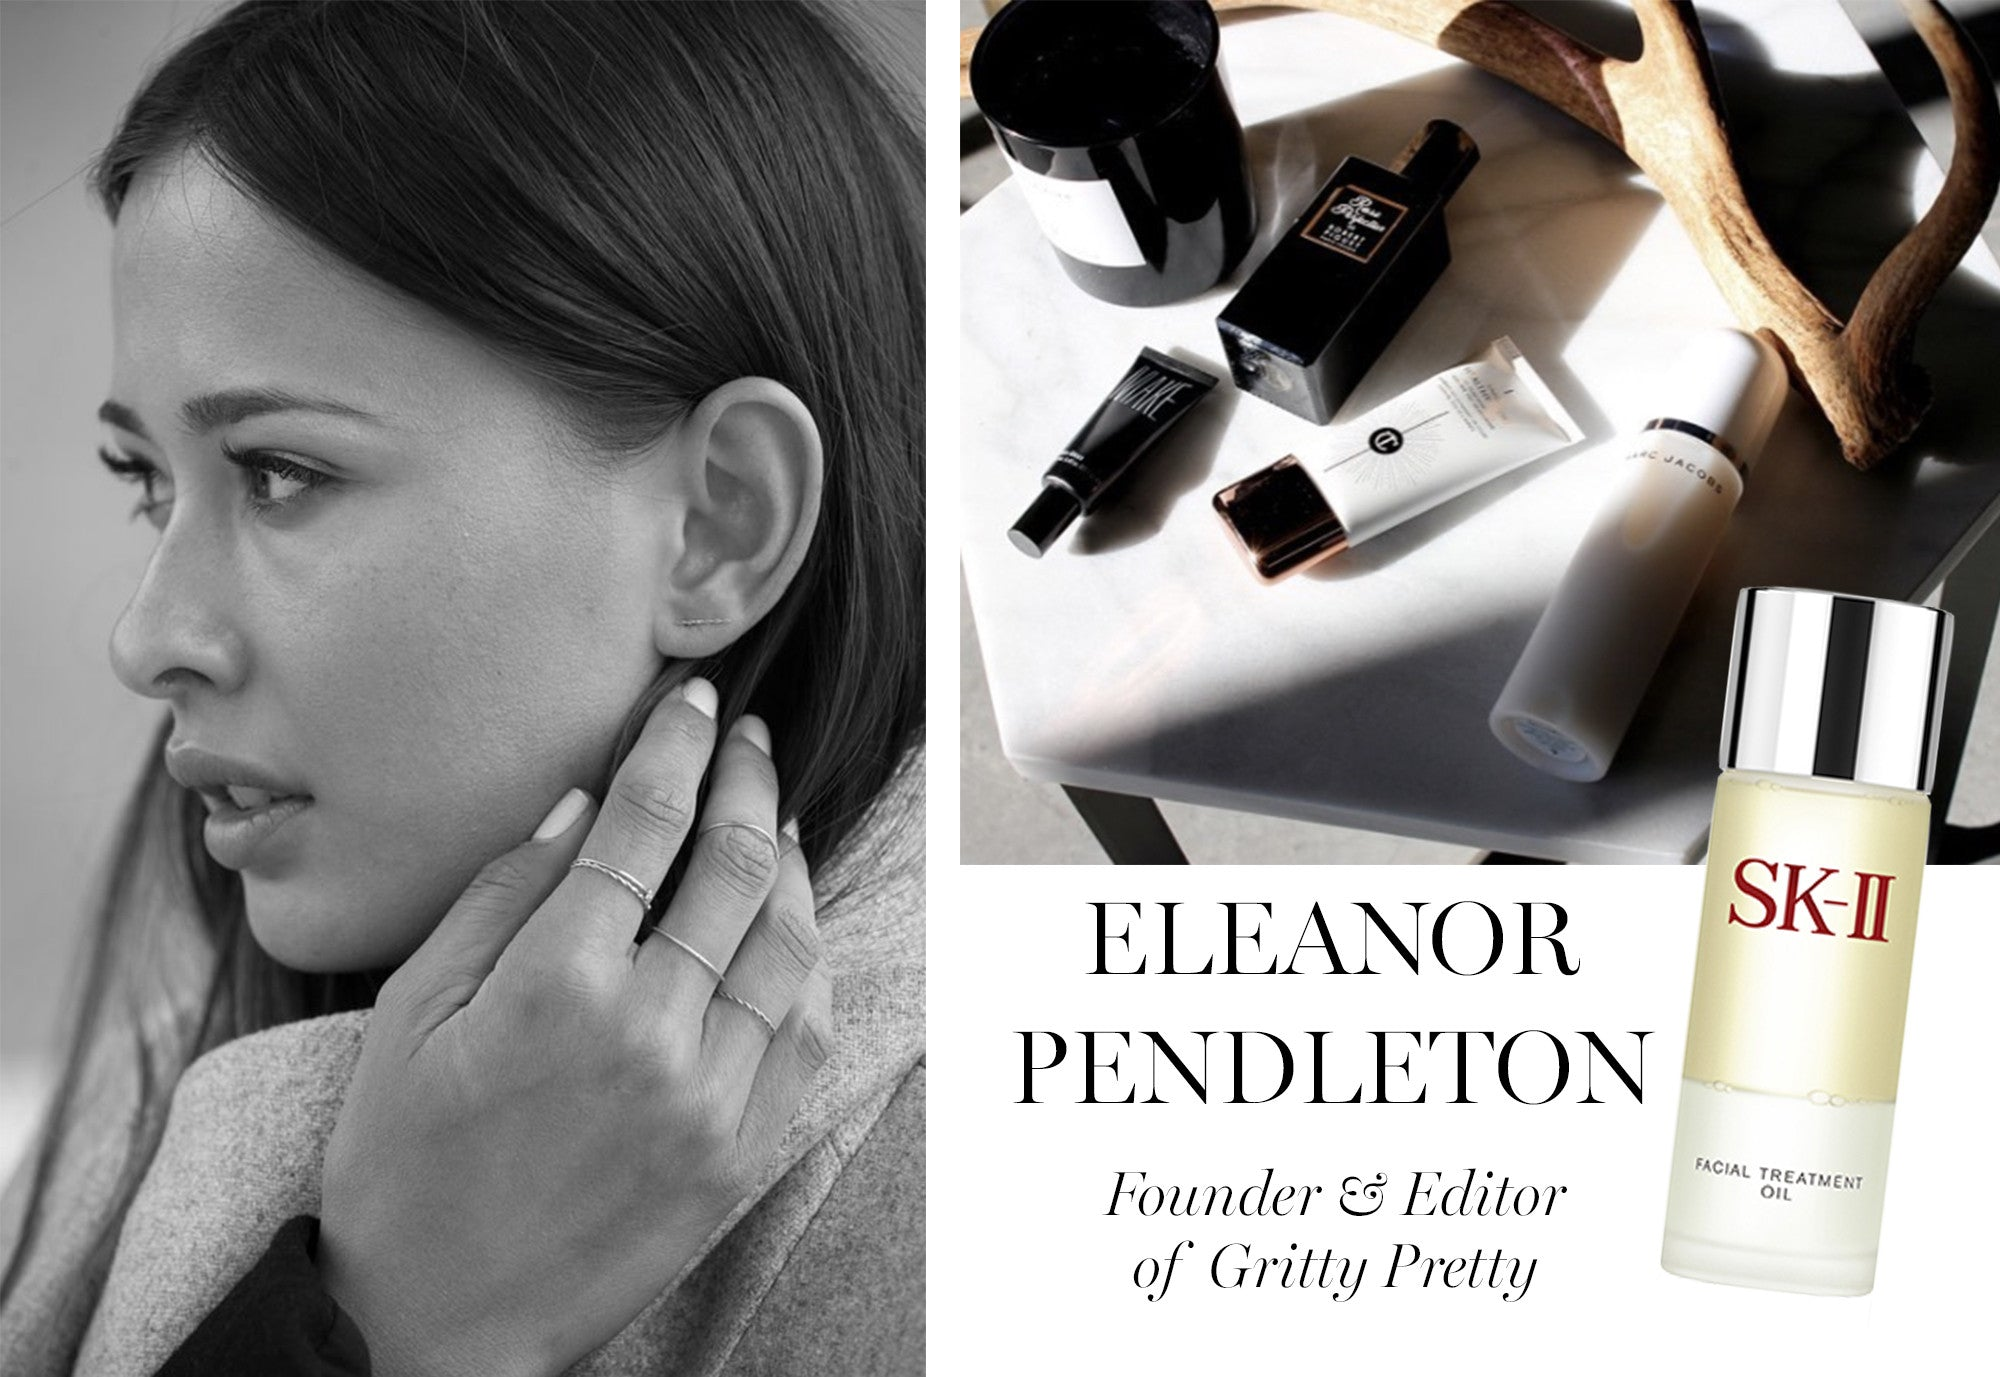 Eleanor Pendleton Beauty Expert at Gritty Pretty Magazine Winter Care